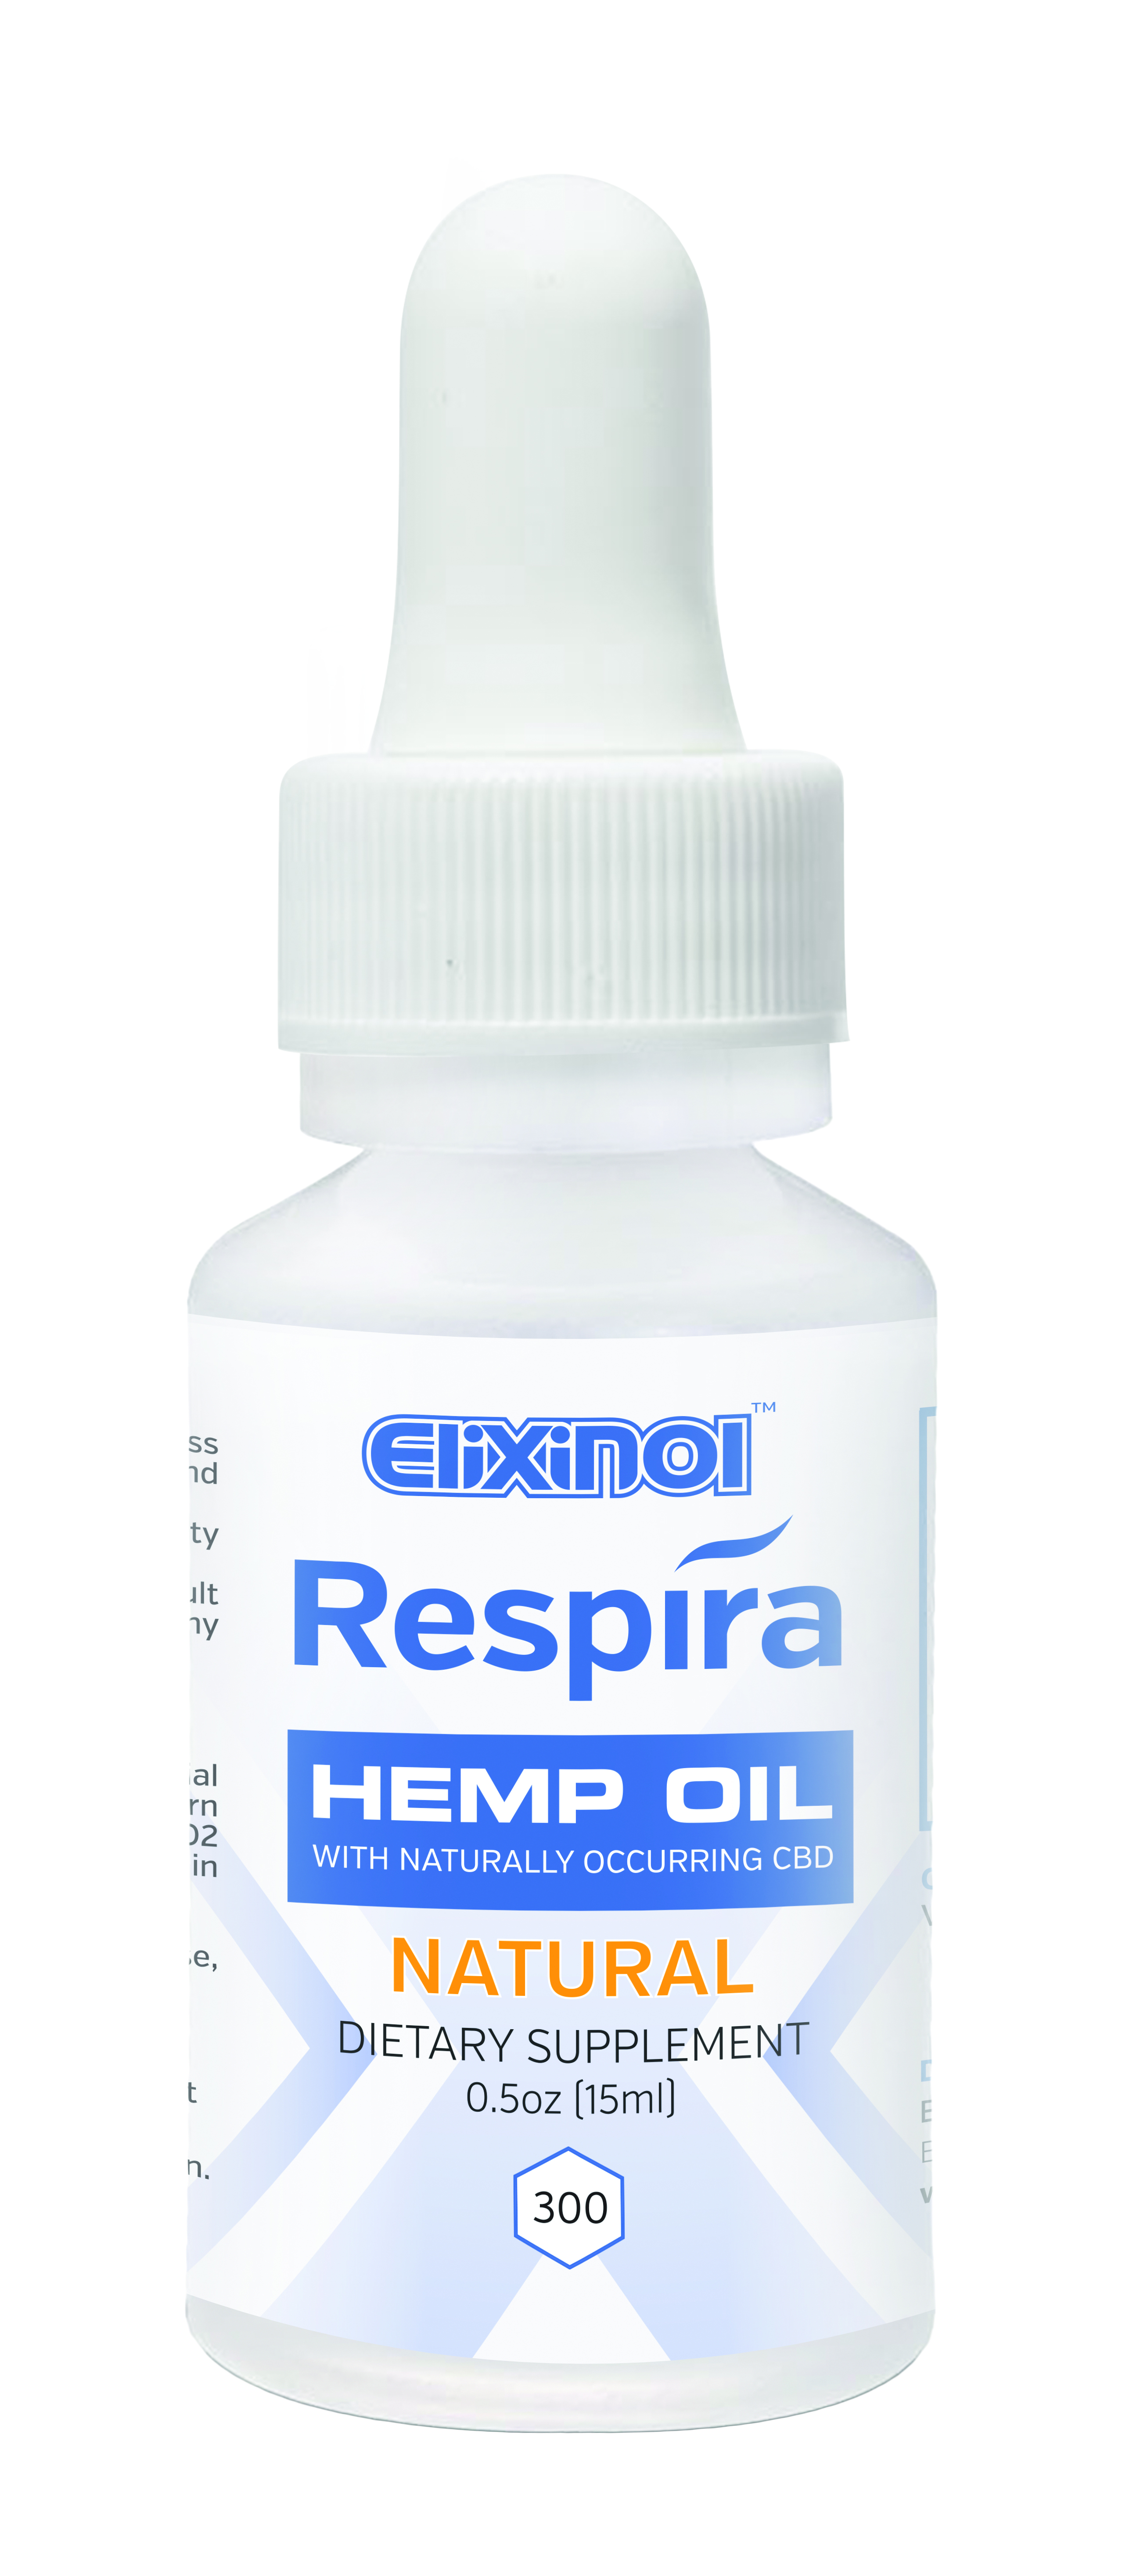 Respira CBD oil for oral, topical or vape use by Elixinol. 300mg, Natural Flavor